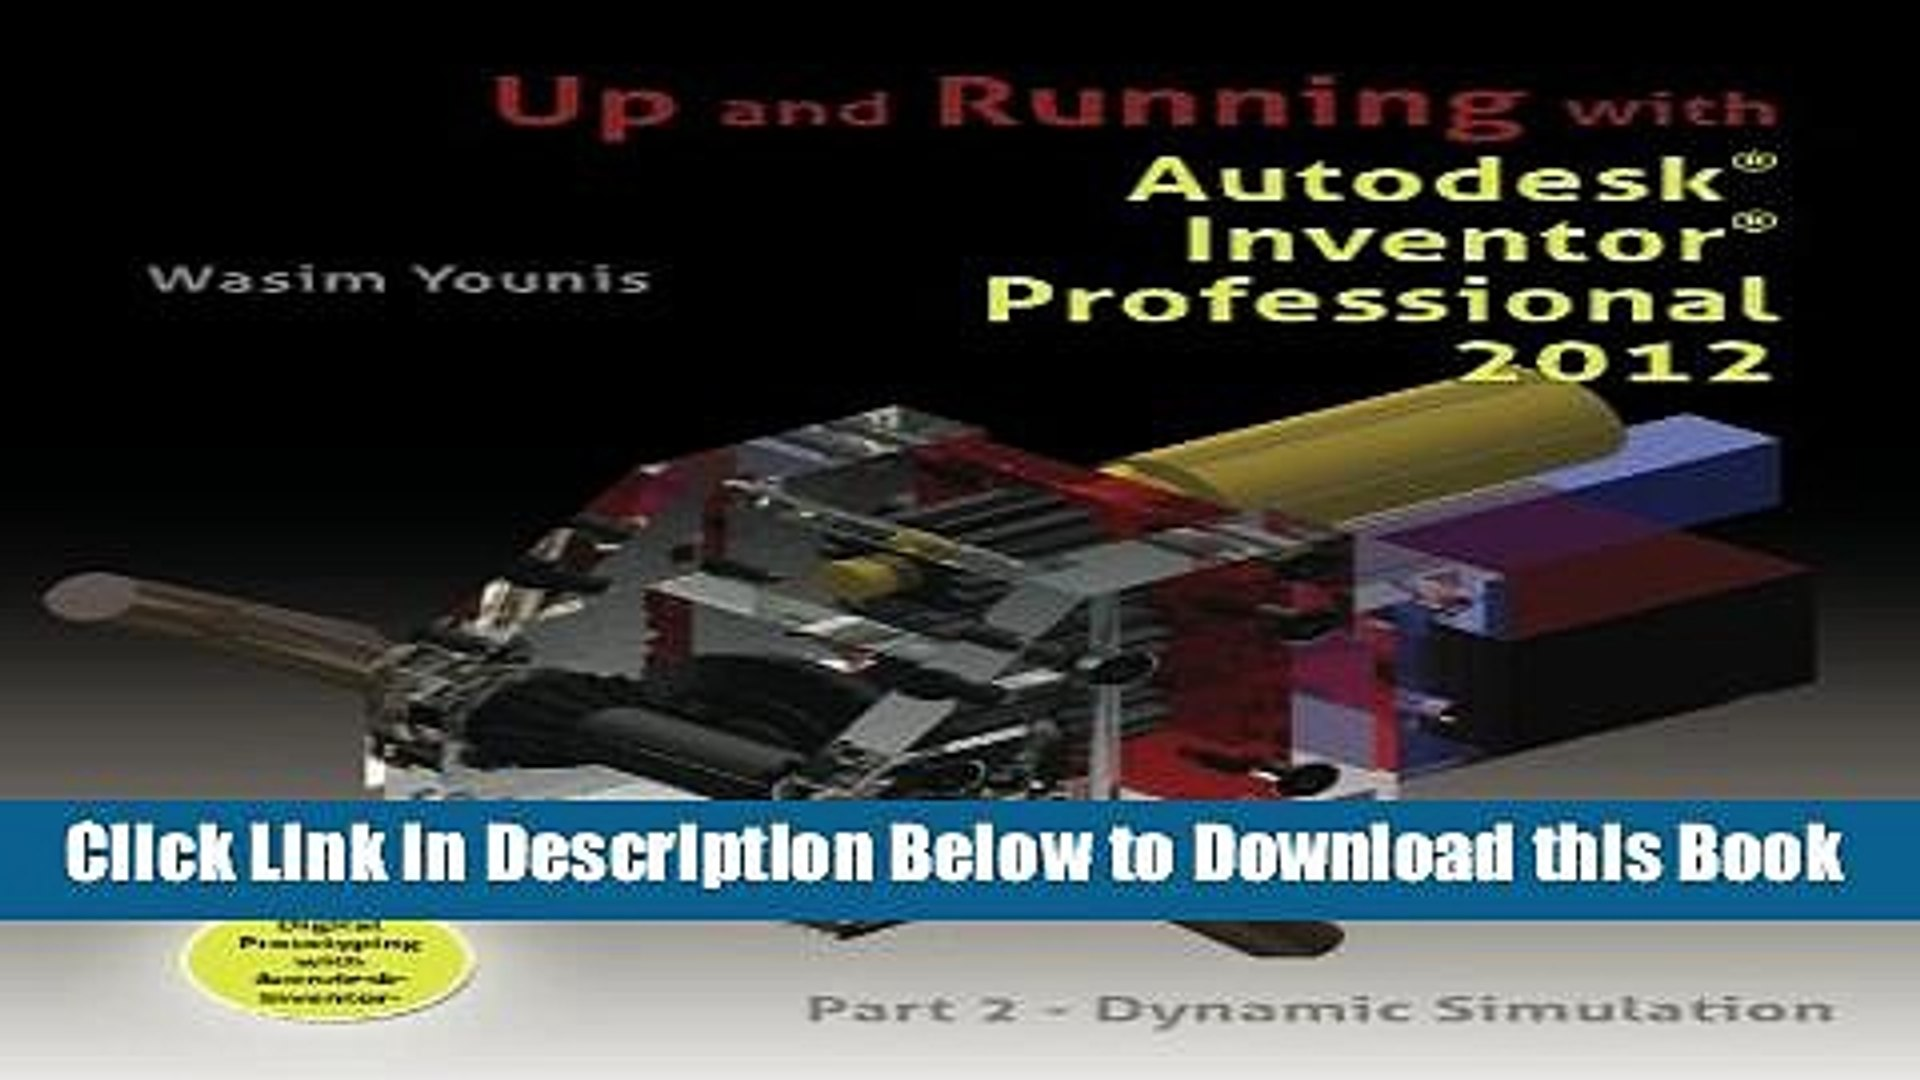 [Best] Up and Running with Autodesk Inventor Professional 2012: Part 2 -  Dynamic Simulation Free